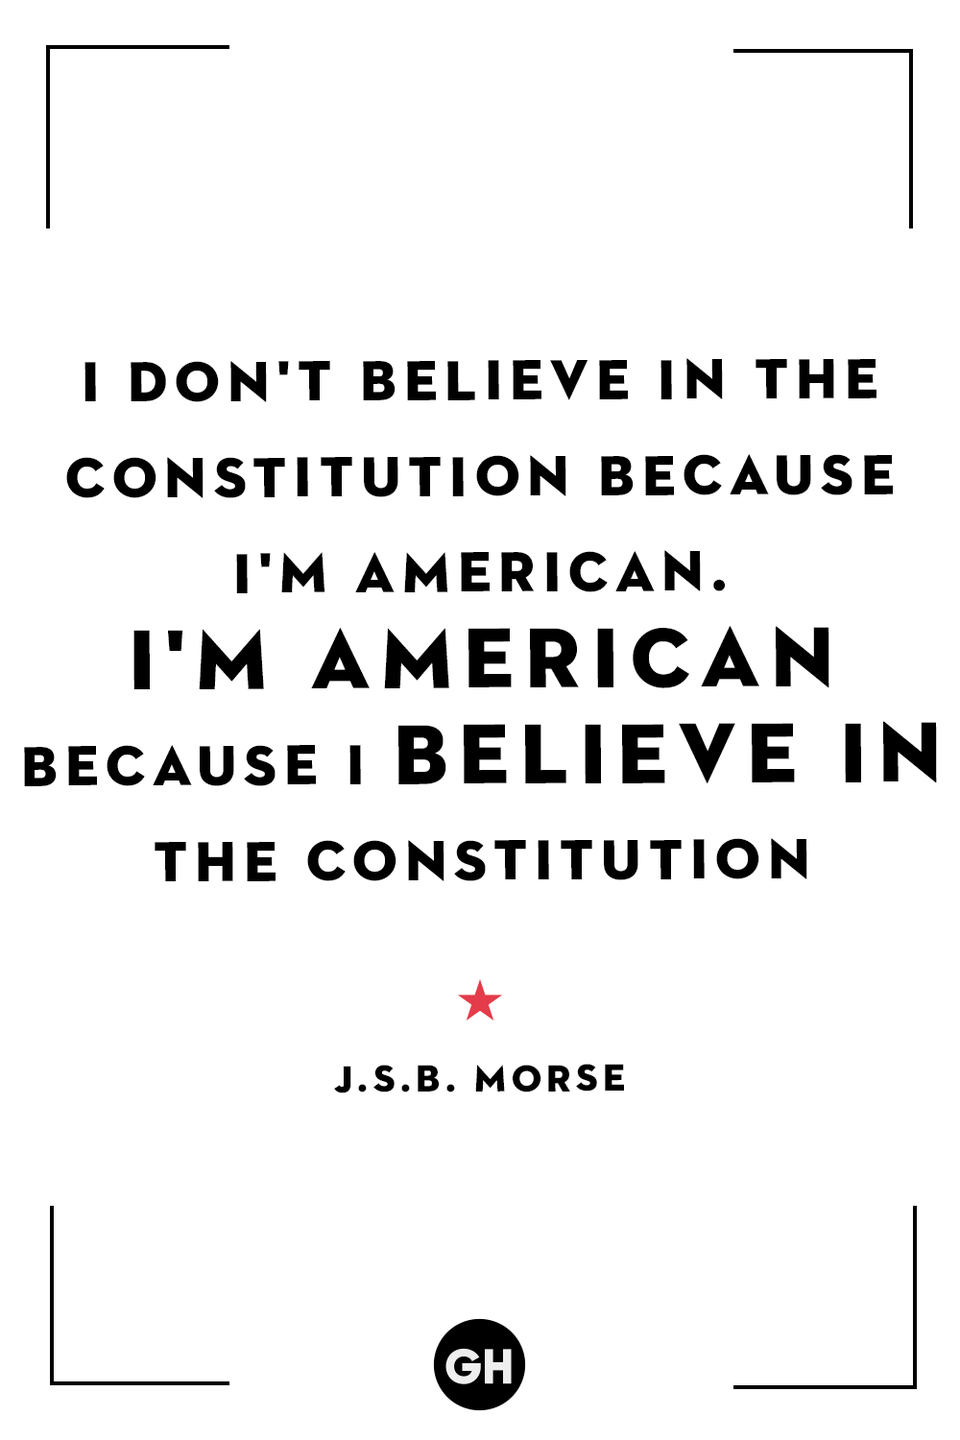 <p>I don't believe in the constitution because I'm American. I'm American because I believe in the constitution. </p>